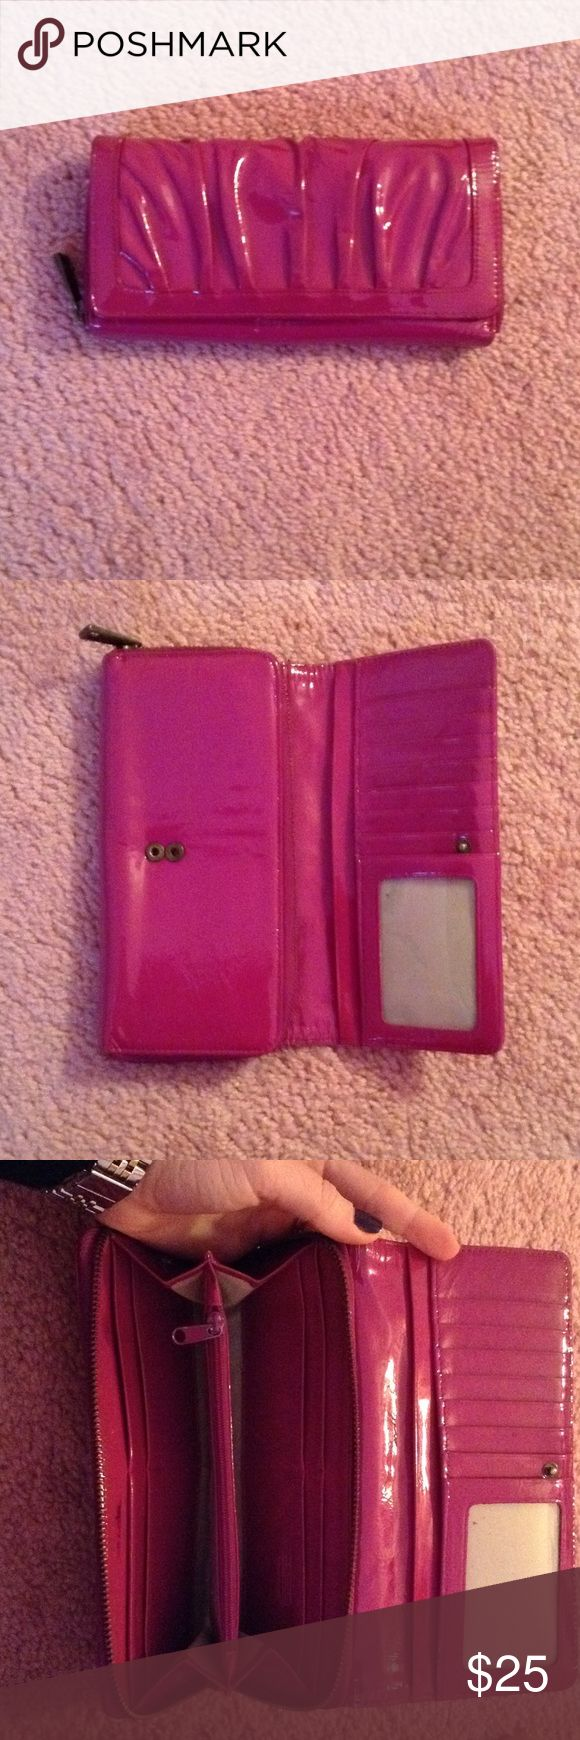 Magenta Nordstrom Wallet Magenta Nordstrom Wallet in good condition!! The wallet snaps open and has a zipper compartment. Plenty of space for your credit cards/ gifts cards etc. On the flap side there is clear slot for your license and two big slots for money, receipts etc. The zipper compartment opens up and has two sides including a section for change. Normal signs of wear, last picture shows a black stain, back side of wallet (not shown) has two little chips. Nordstrom Bags Wallets